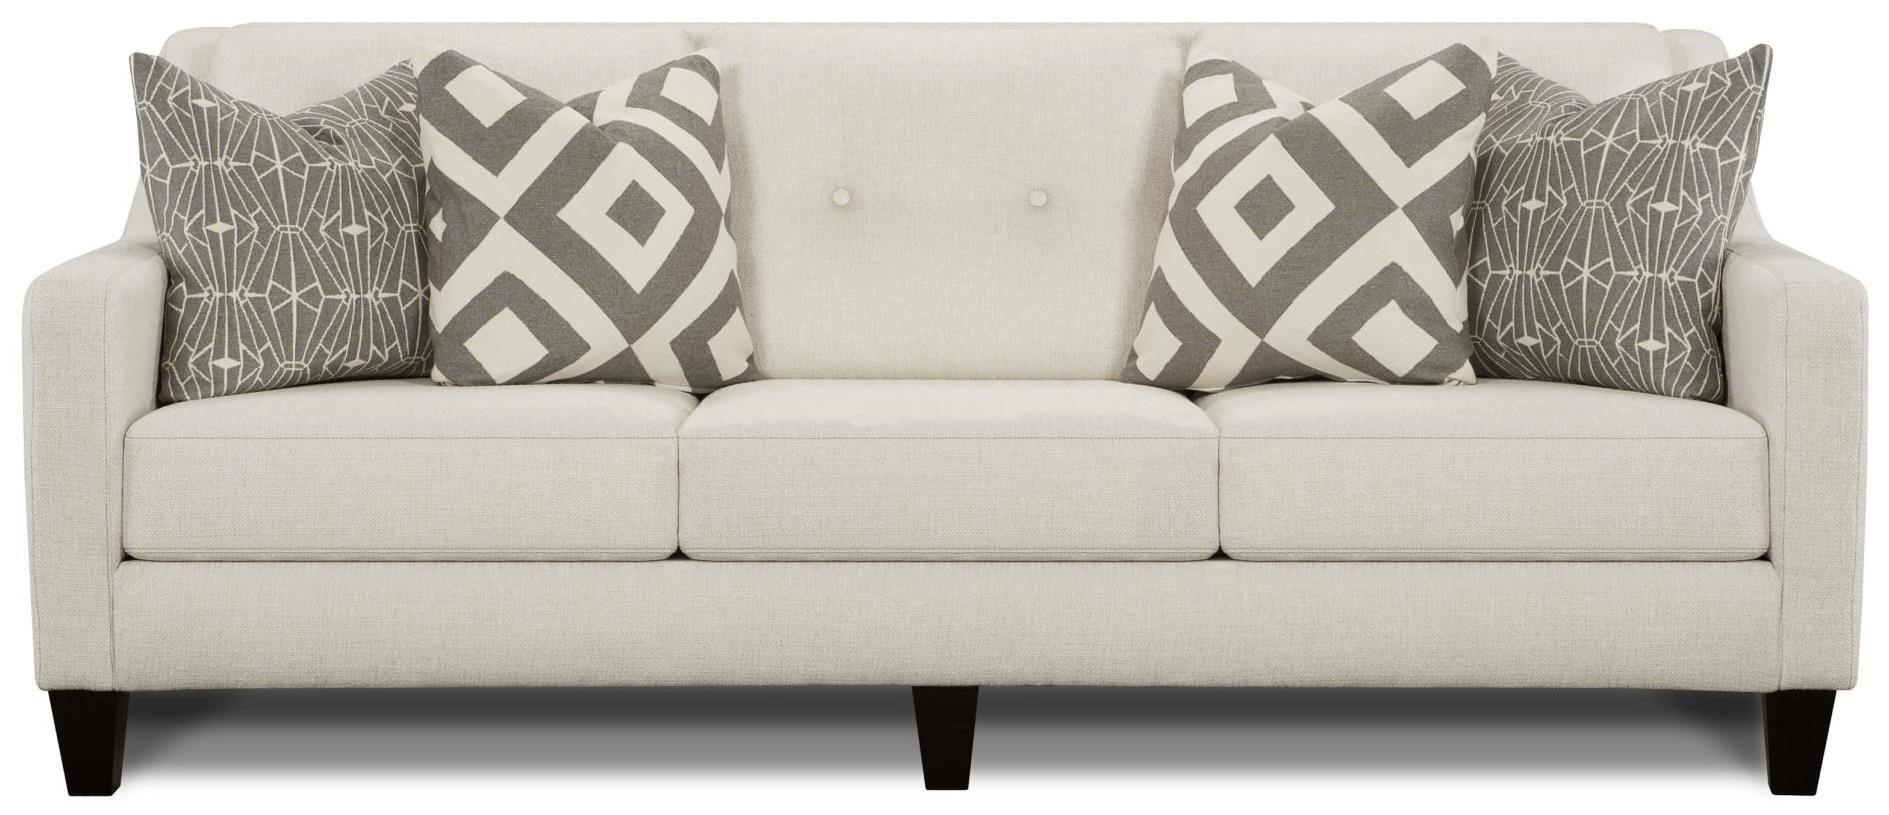 VFM Signature 3280 Sofa - Item Number: 3280BSugarshack Glacier